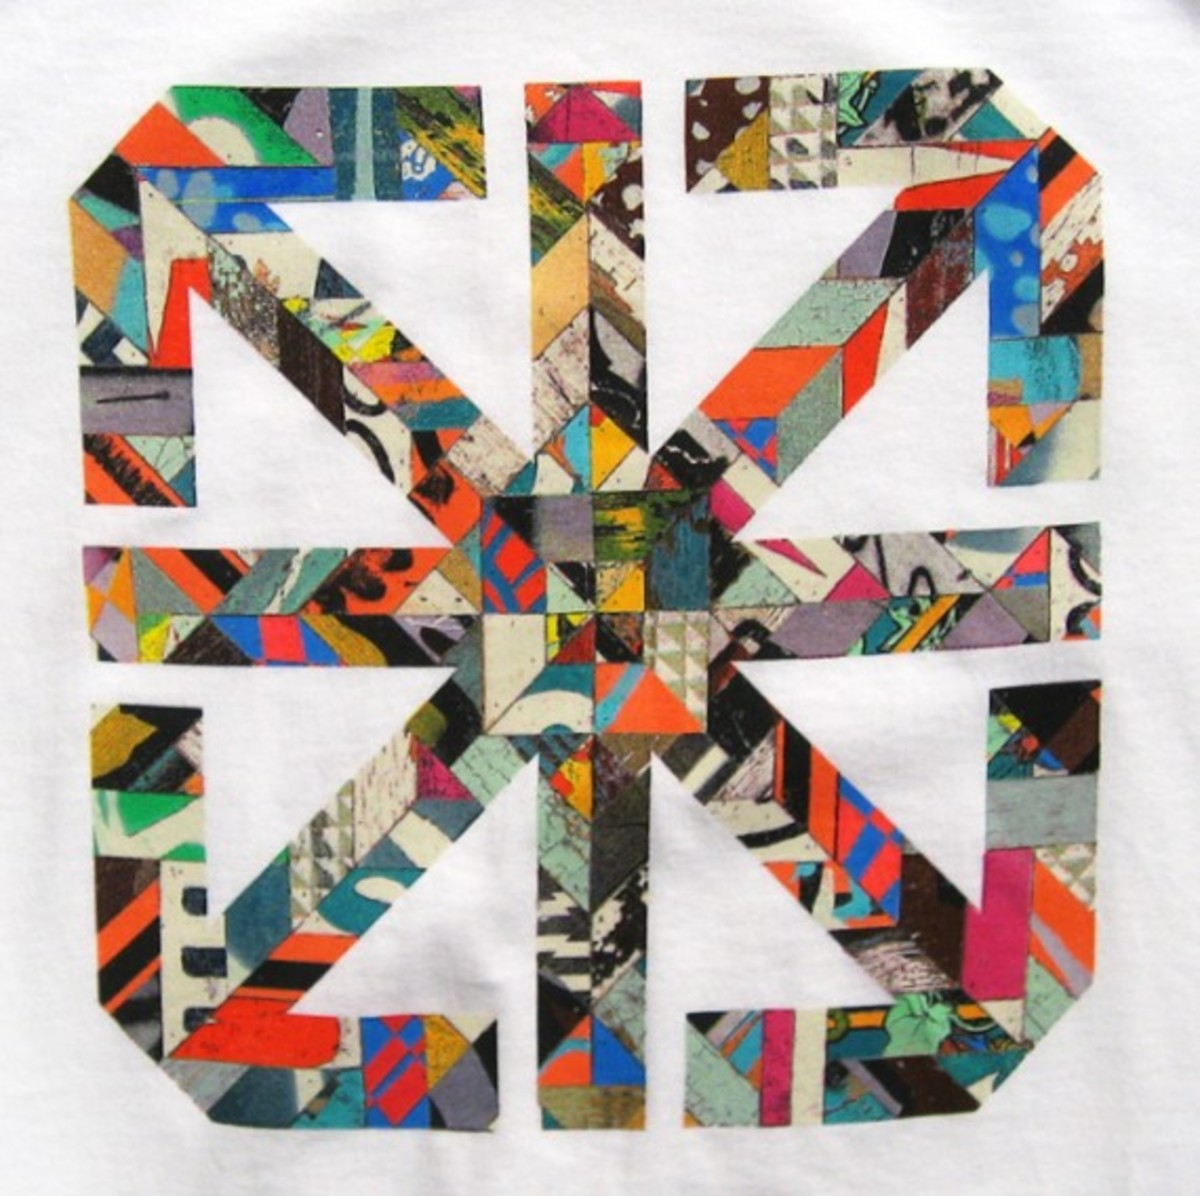 the-seventh-letter-revok-ordinary-things-t-shirt-03